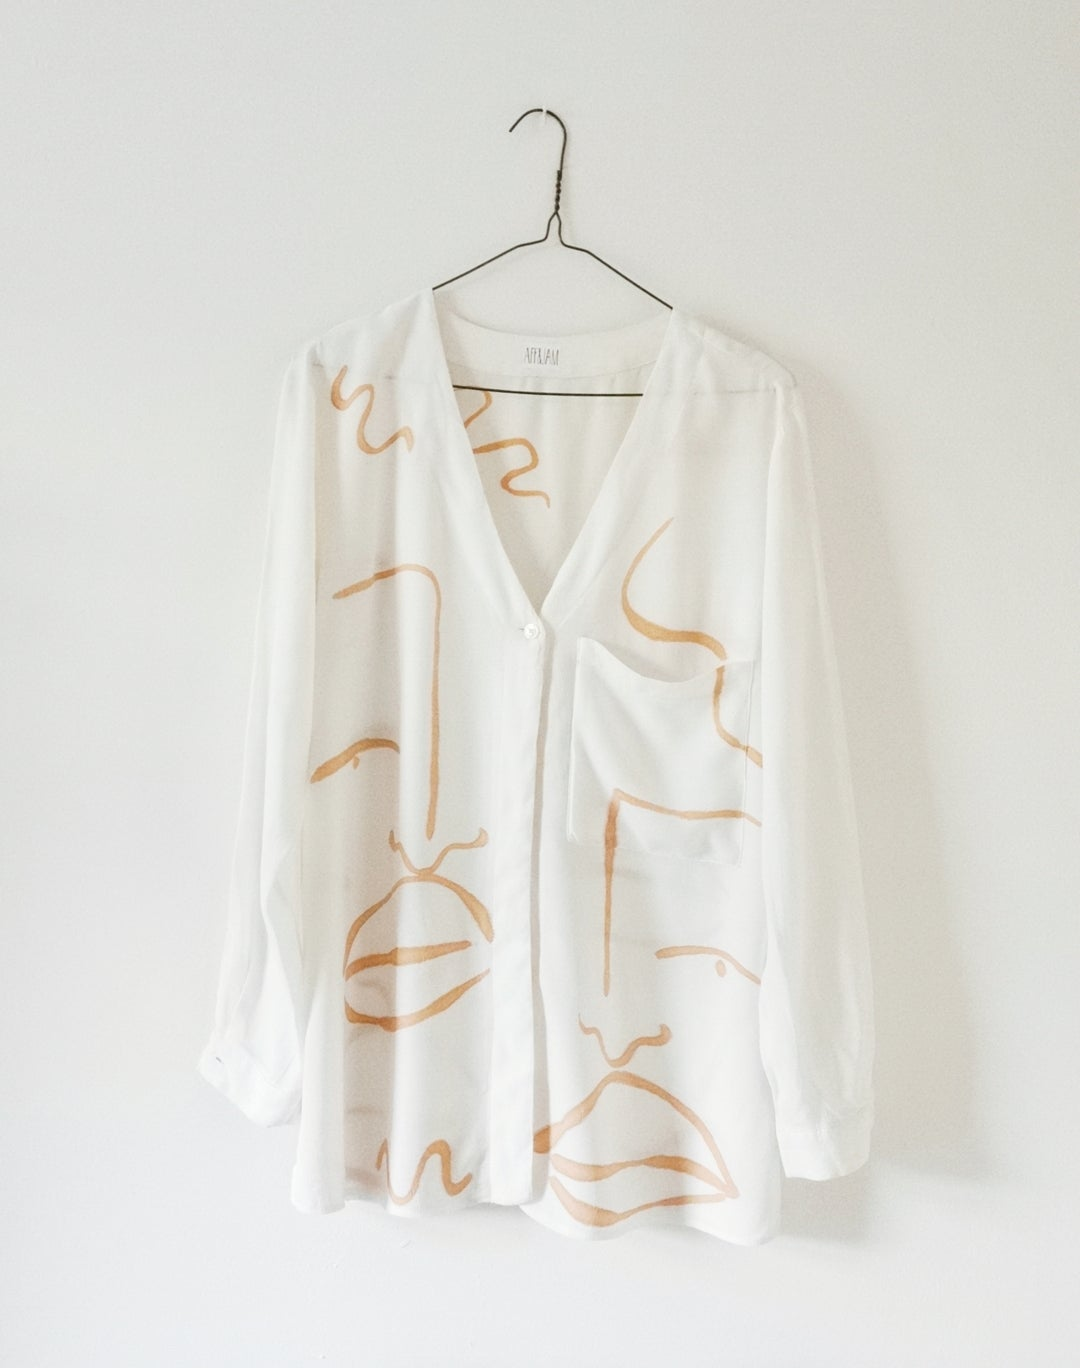 Image of niecey blouse